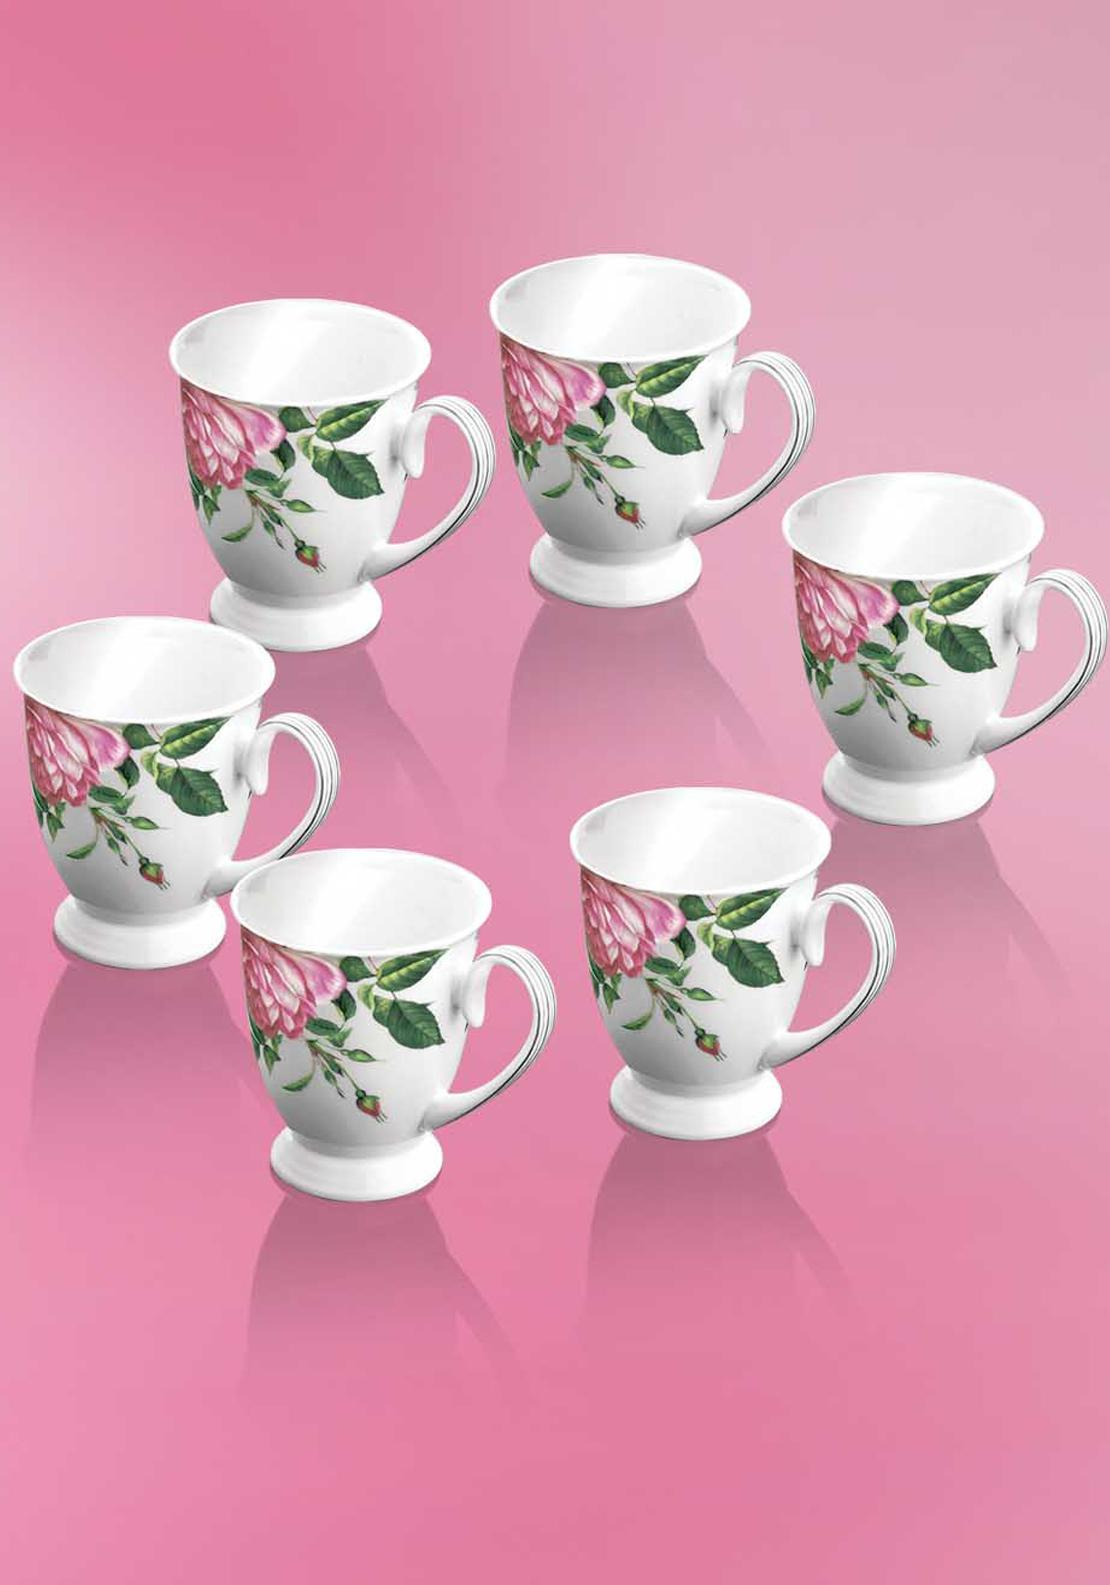 Newbridge Home Rose Mug, Set of 6